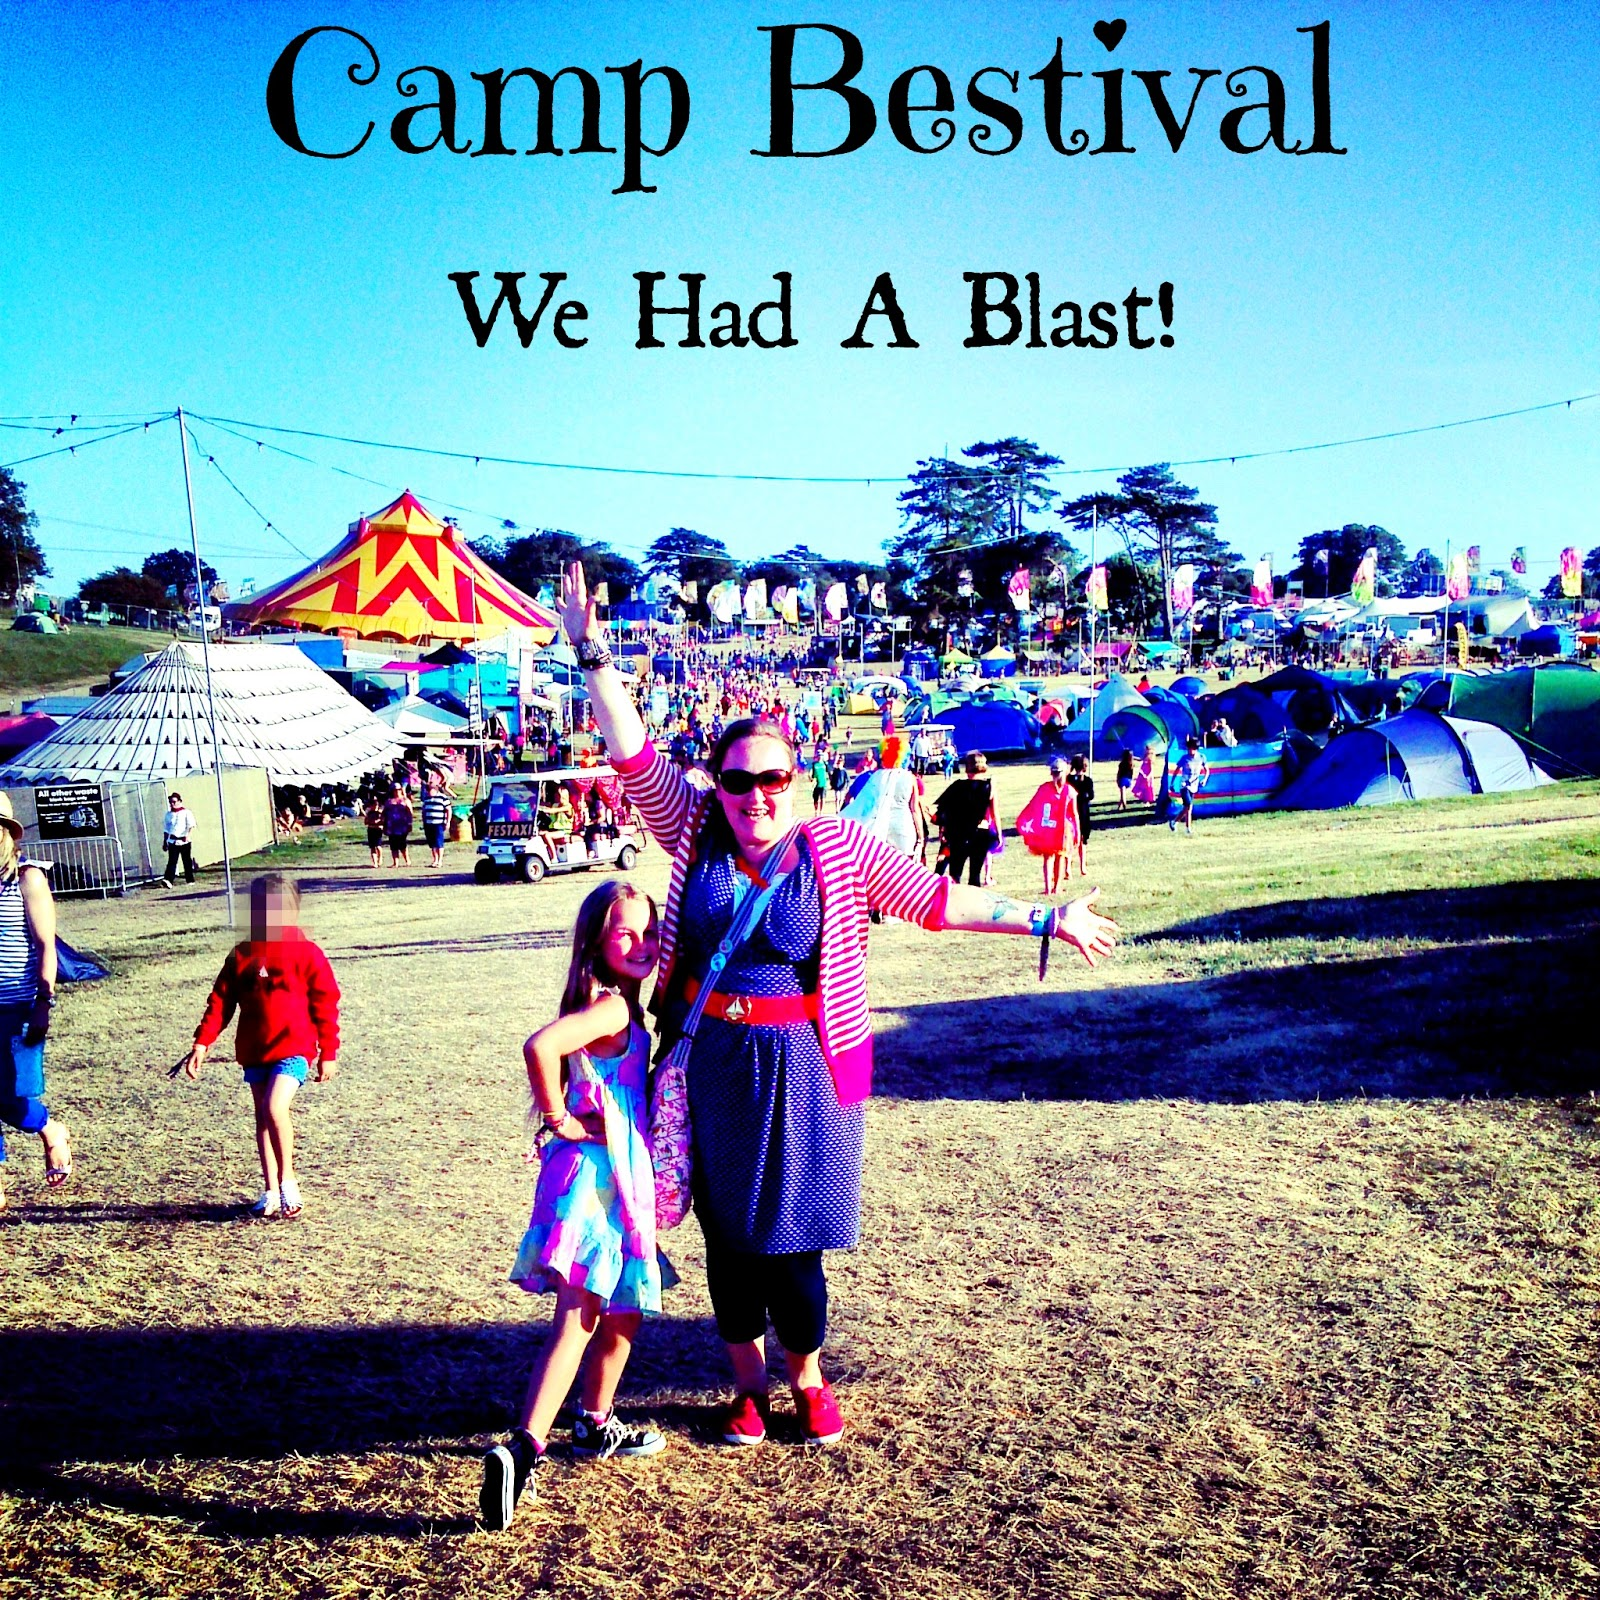 Camp Bestival Family Festival Fun 2014: The Syders: Camp Bestival